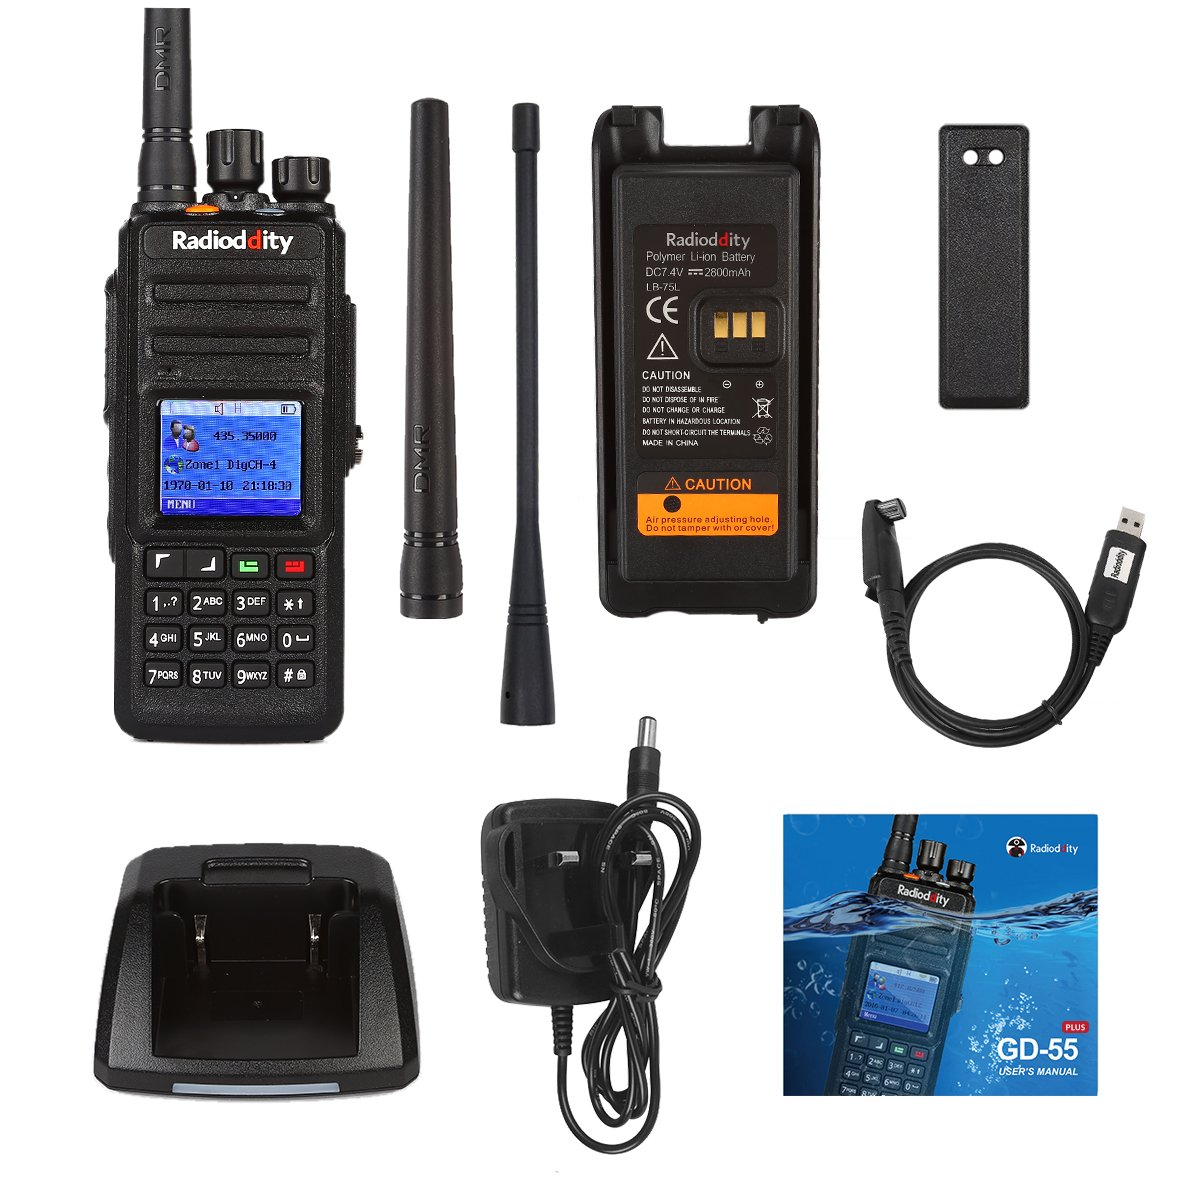 Radioddity GD-55 Plus 10W IP67 Waterproof UHF 400-470MHz 256CH 2800mAh DMR Digital Two Way Radio Ham Radio Compatible with Mototrbo Dual Time Slot, with Free Programming Cable and 2 Antennas by Radioddity (Image #7)